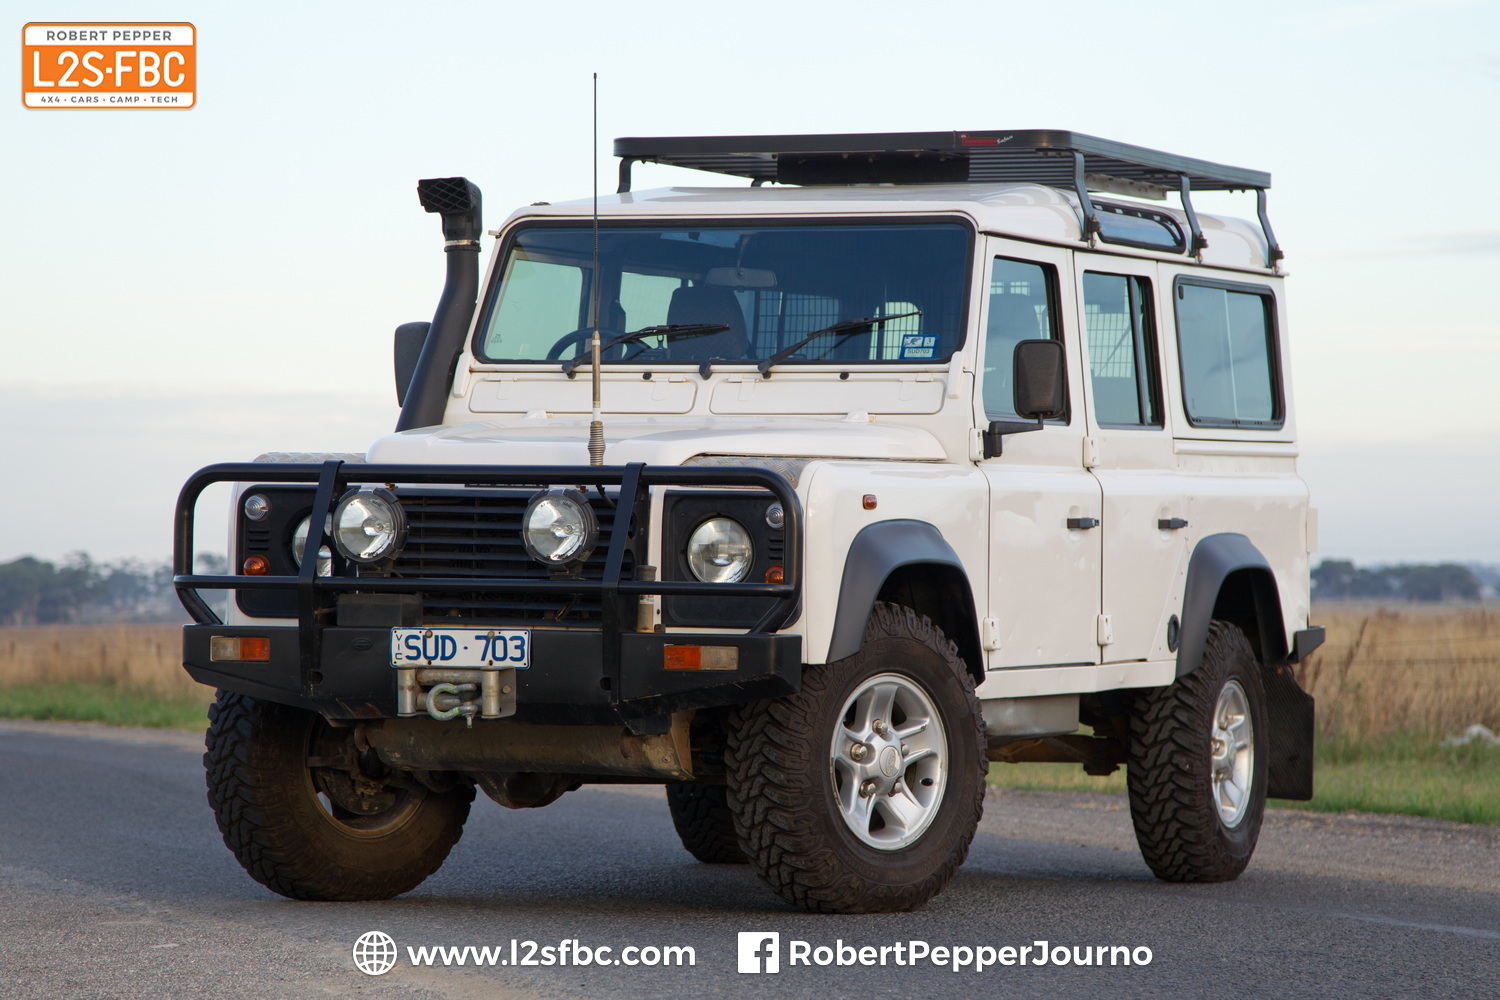 When I sold my Defender